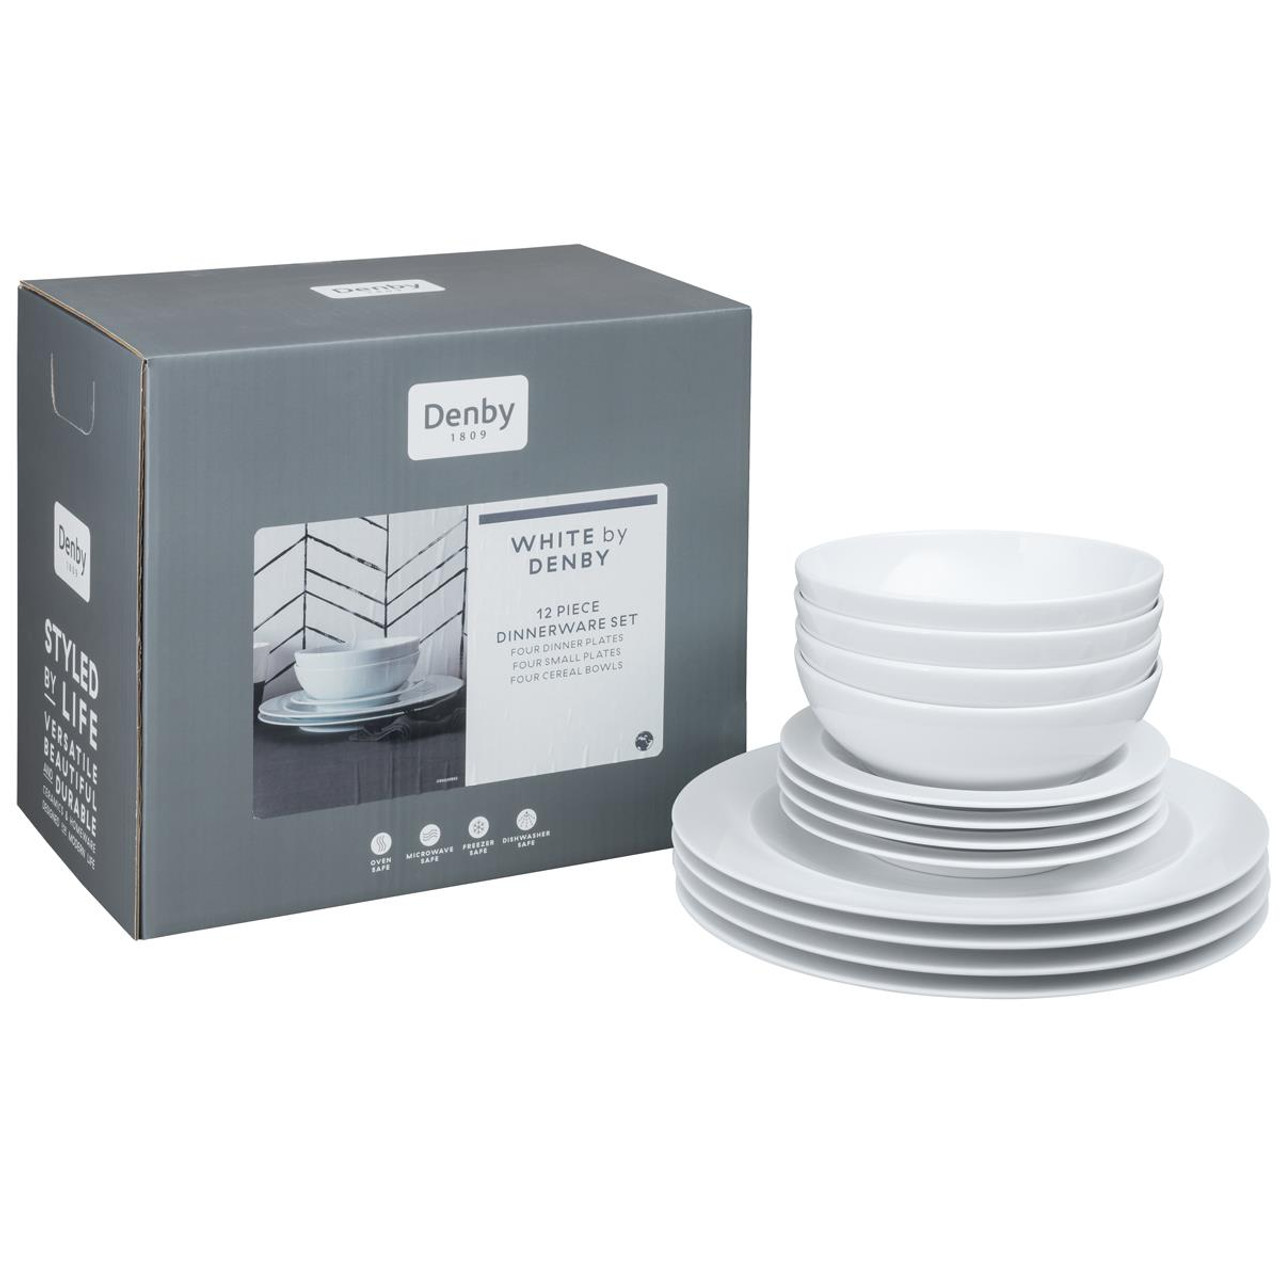 Denby White By Denby 12 Piece Tableware Set